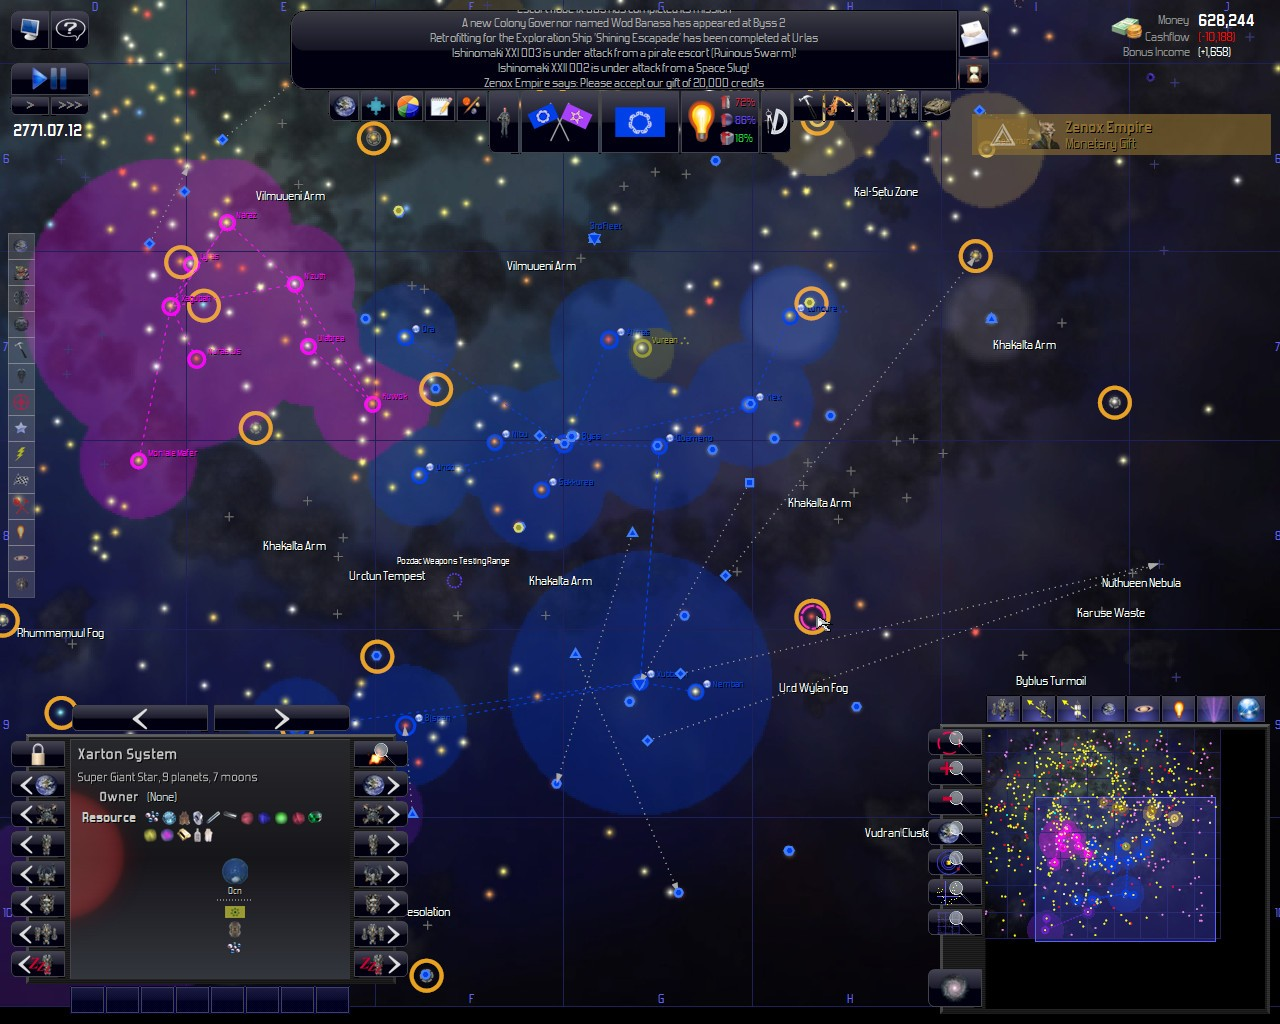 Spacing Out: Procedural Generation Gets Me Hot | Space Game